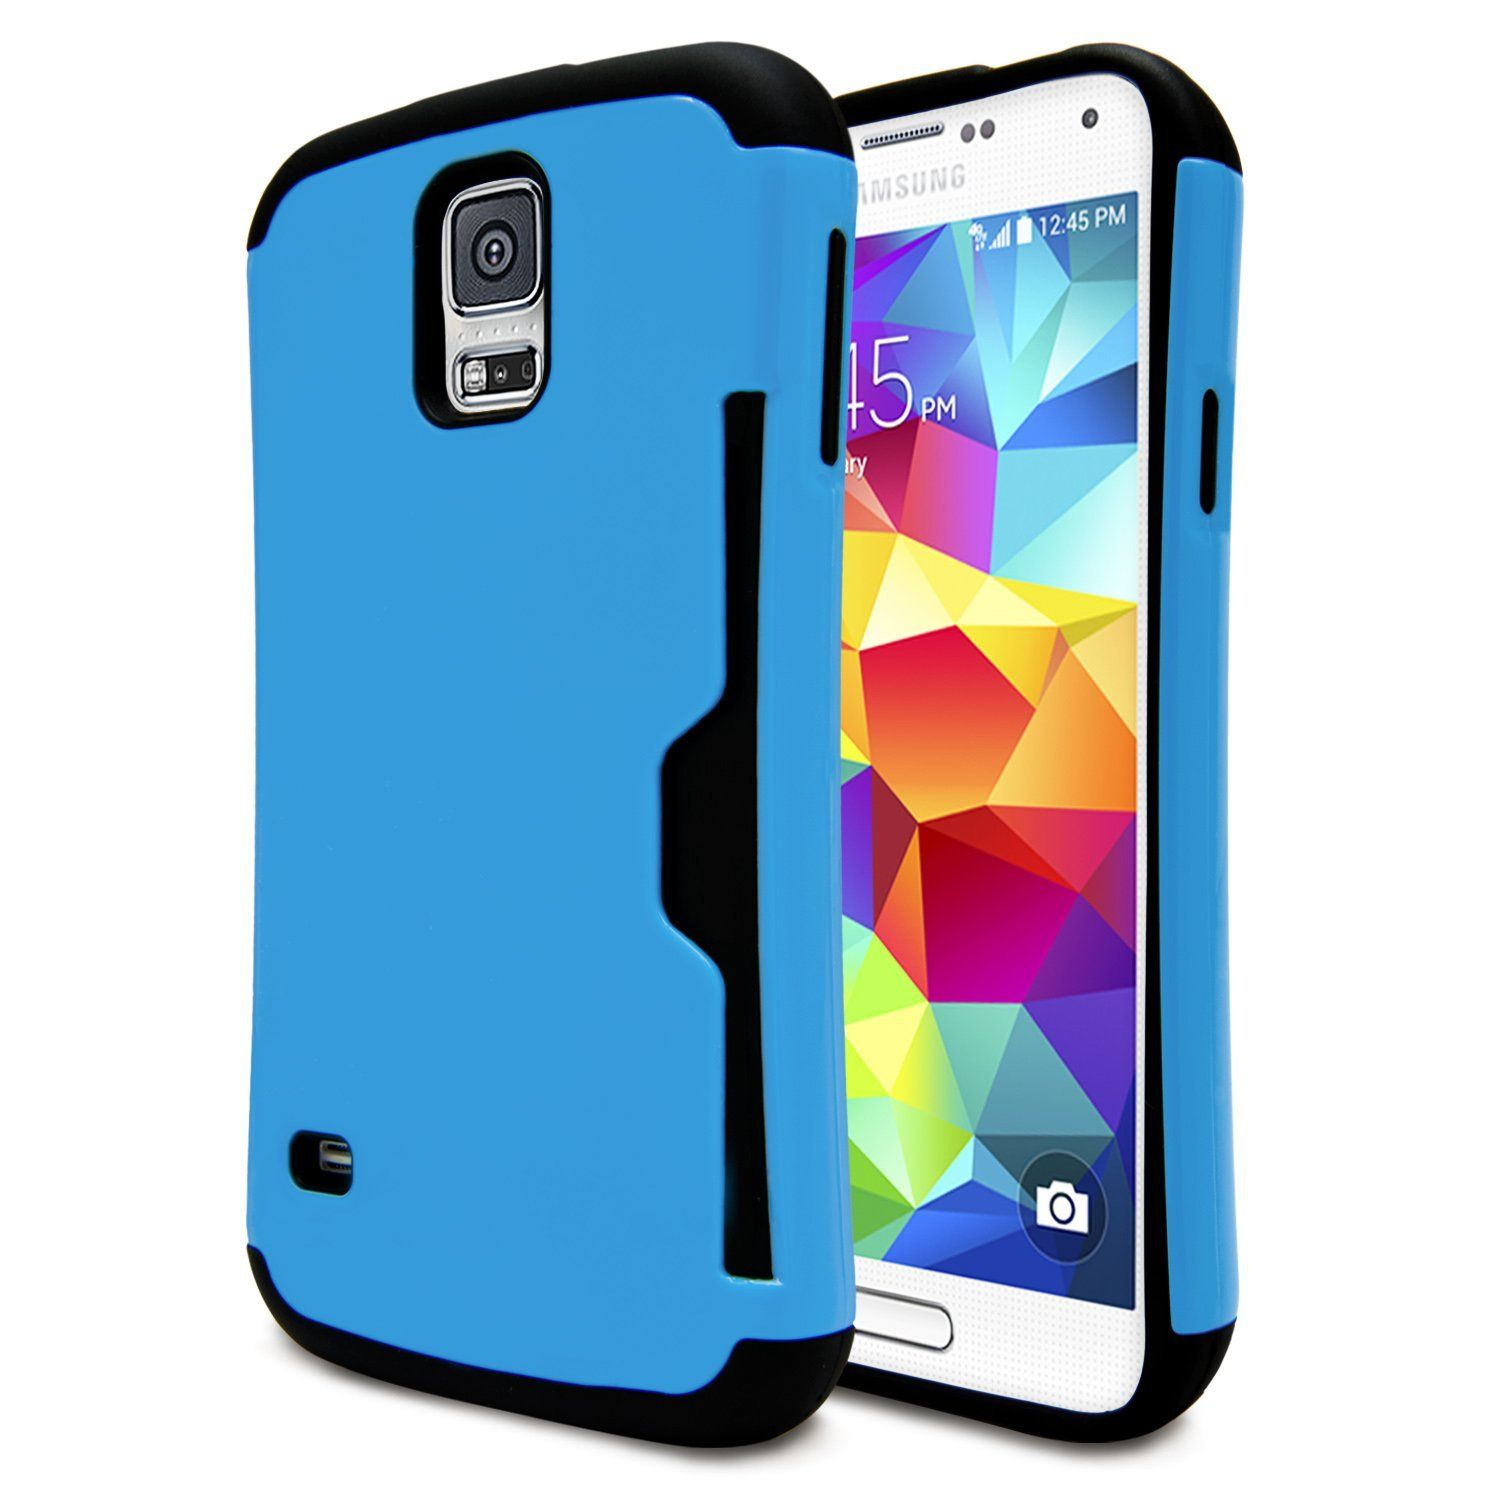 Galaxy S5 Case Wallet Case Ultimate Hybrid Armor Protective Galaxy S5 Slim Hard Shield Cover Build In Credit Card Slot Holder Galaxy S5 Case Samsung Galaxy S5